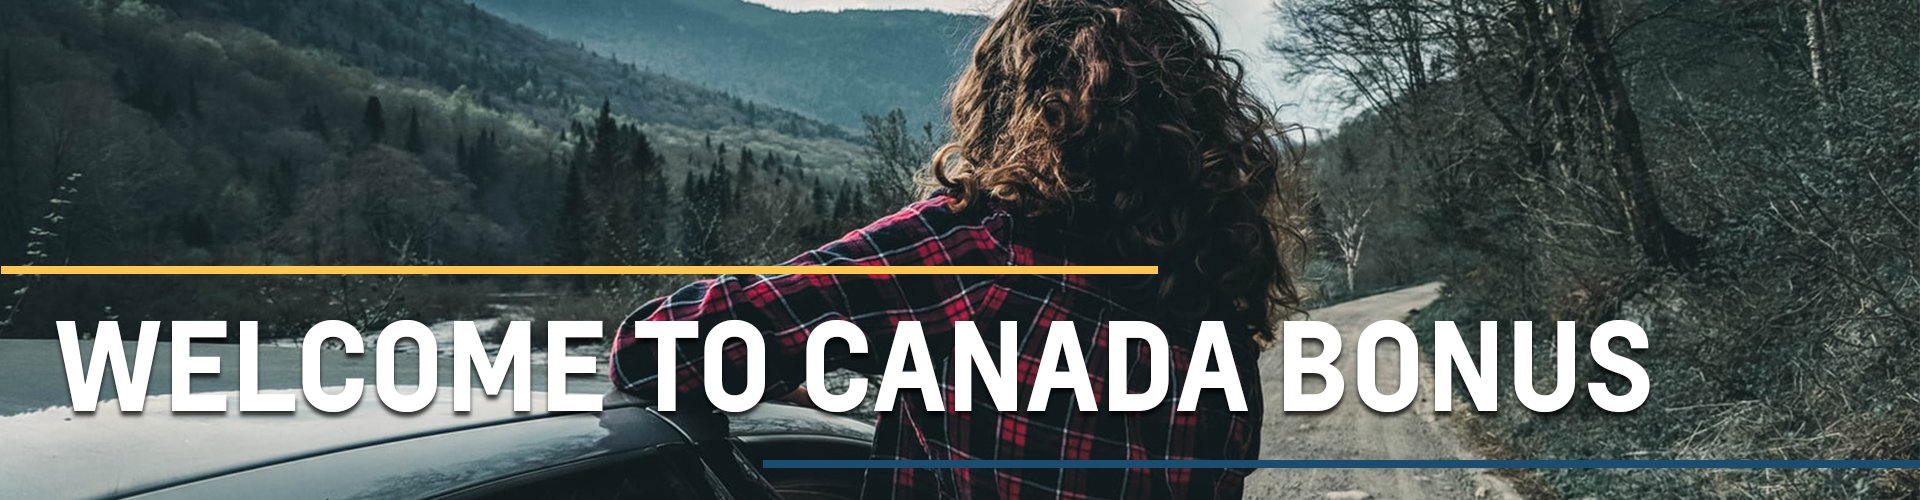 A women with curly brown hair leaning out of a car window looking at the mountains with Welcome To Canada Bonus written across it in white text